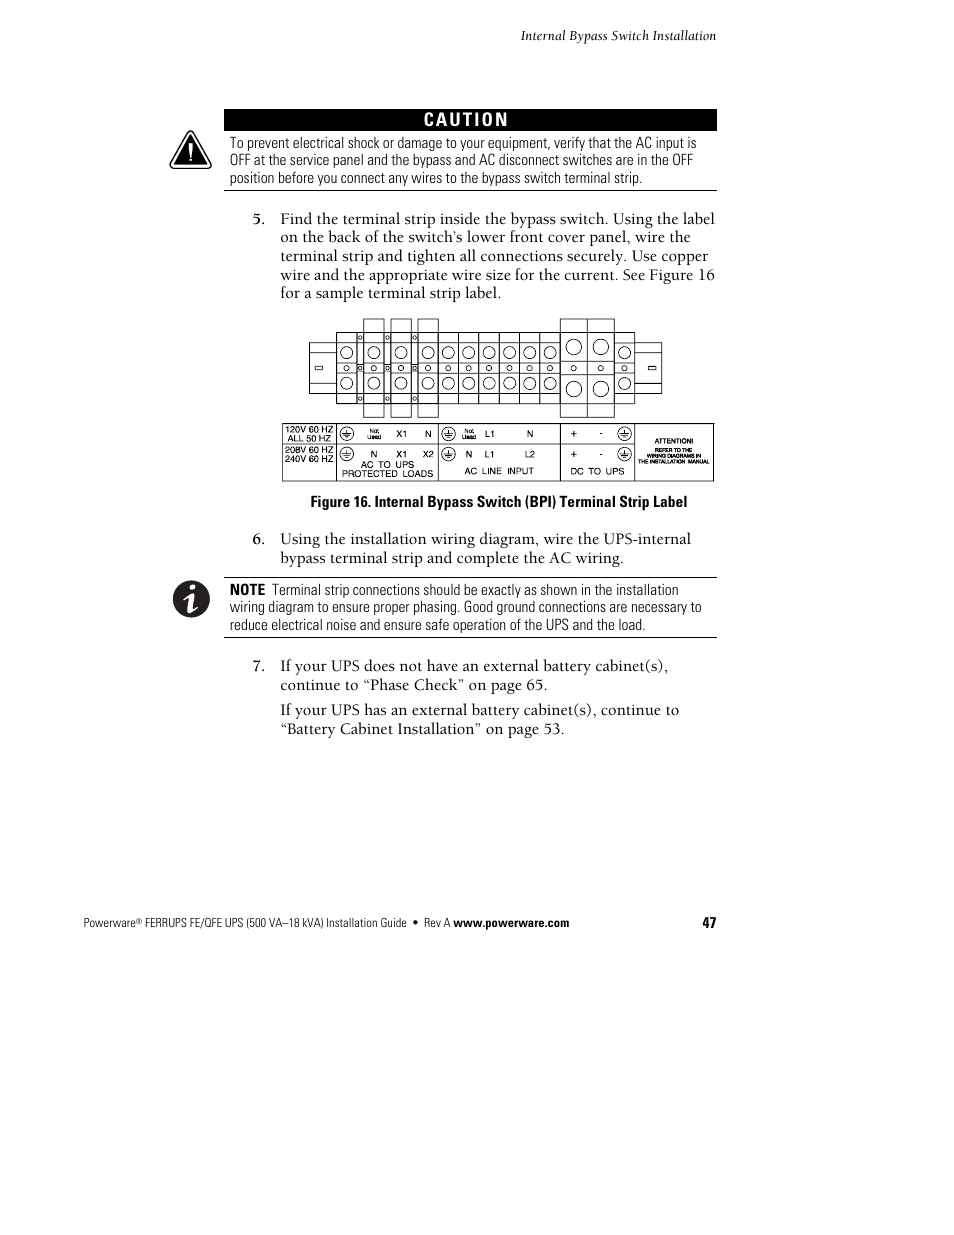 Powerware Ferrups Fe Qfe 500va User Manual Page 53 76 Ups Bypass Switch Wiring Diagram